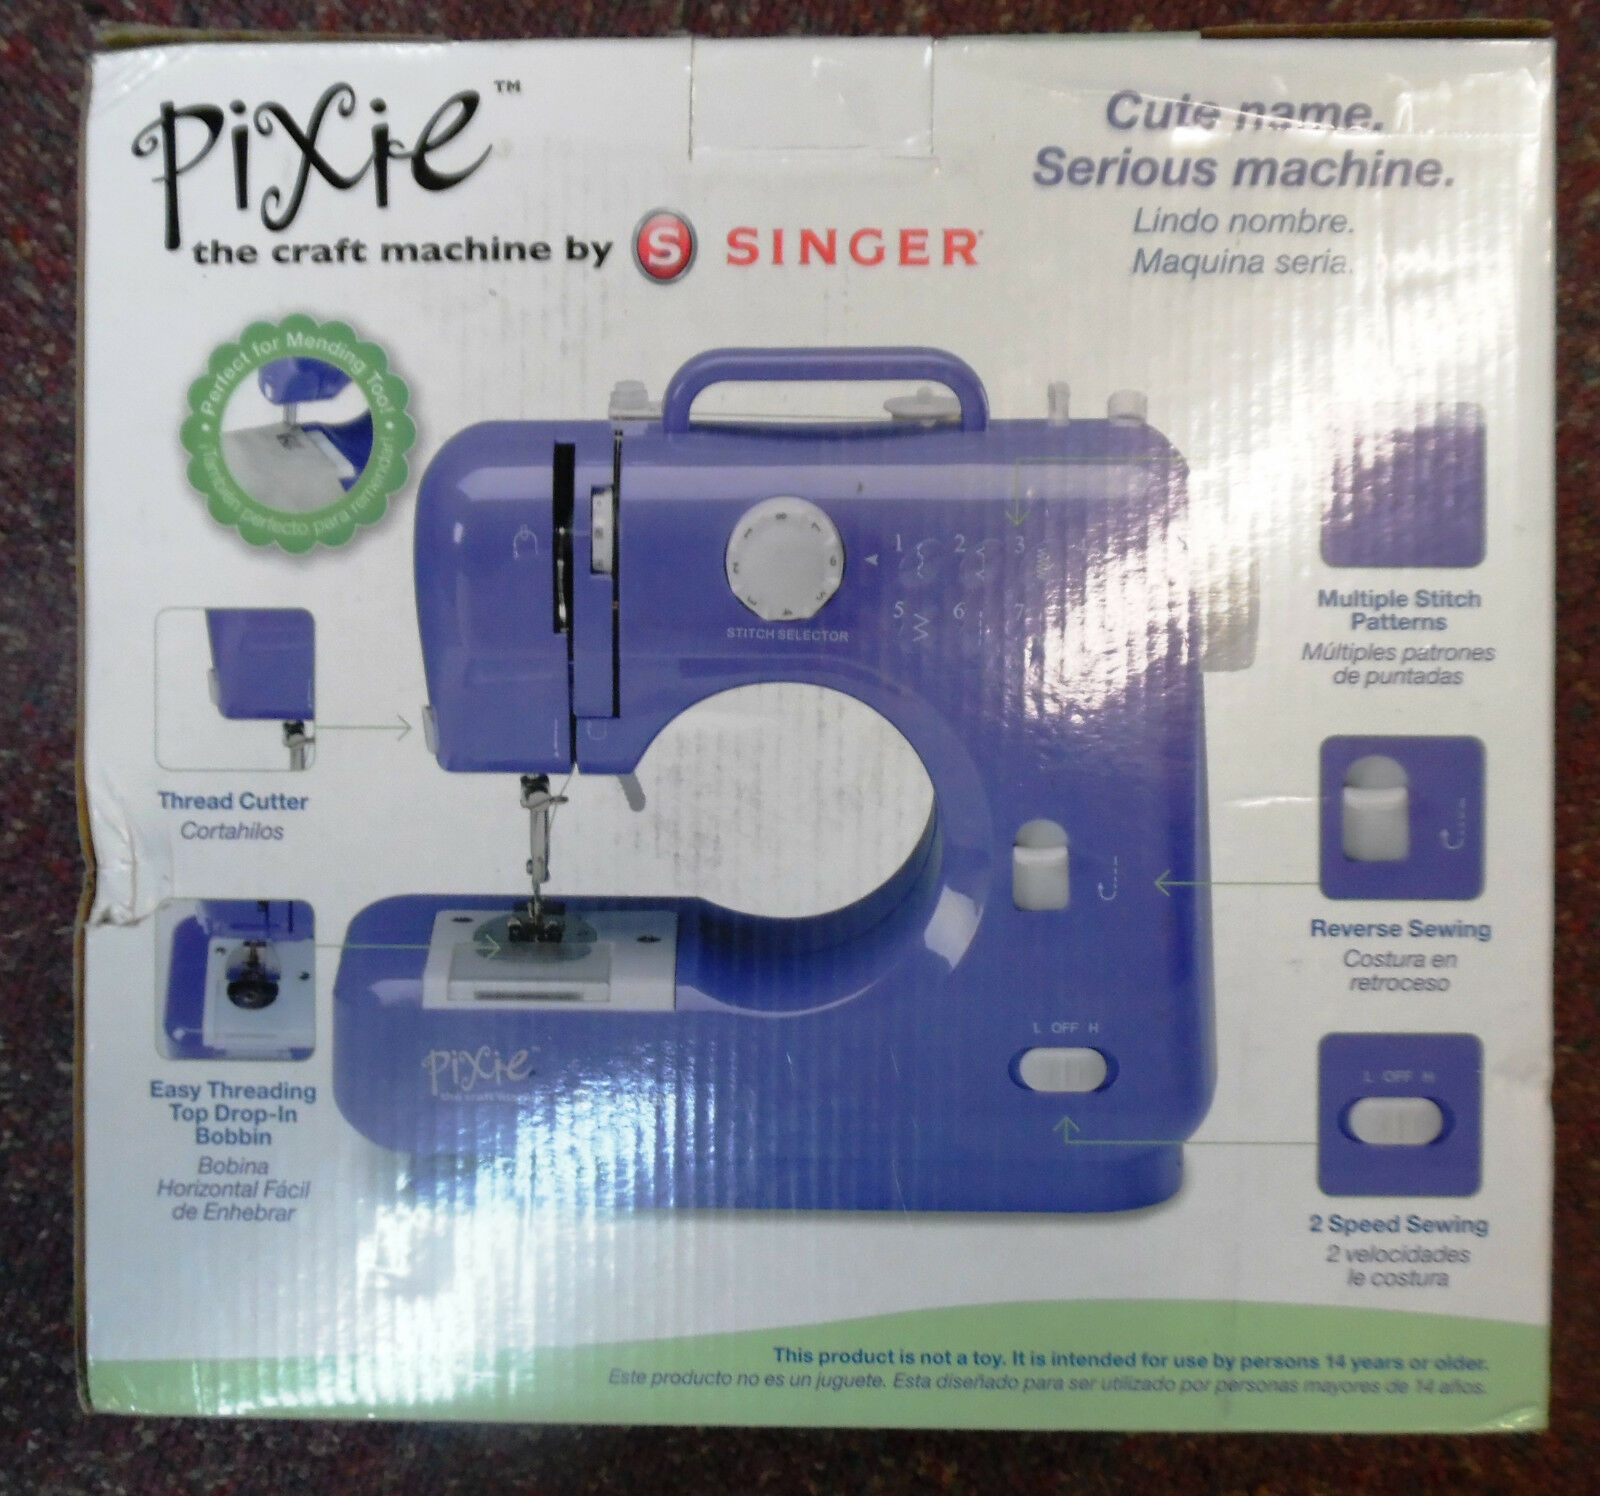 Pixie Electronic Sewing Machine Craft by Singer (one machine ...